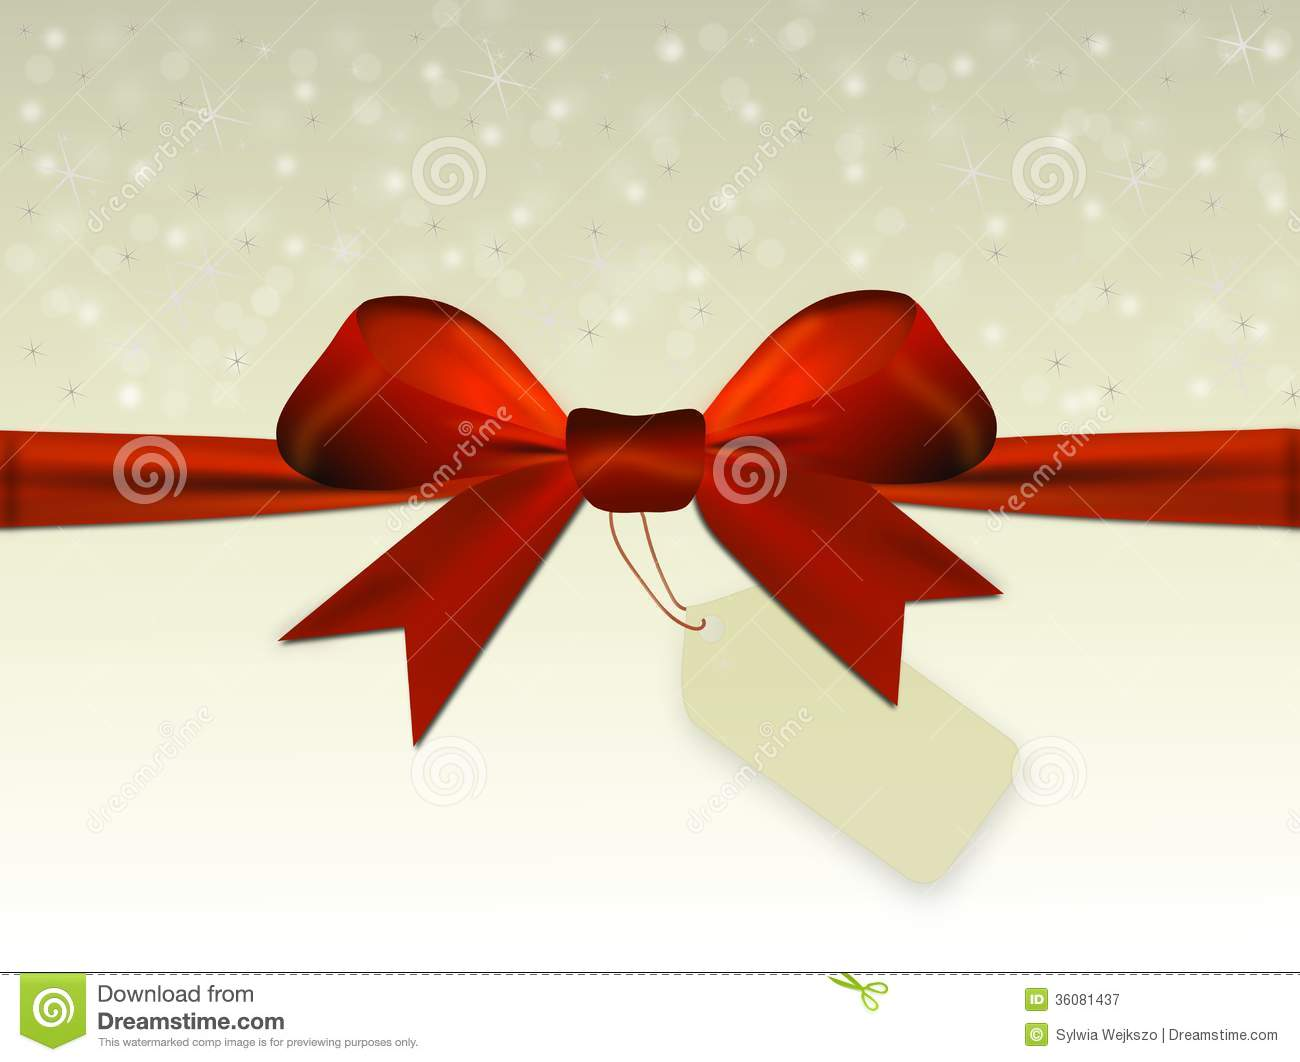 Beautiful christmas bells royalty free stock - Red Bow With Label Royalty Free Stock Photography Image 36081437